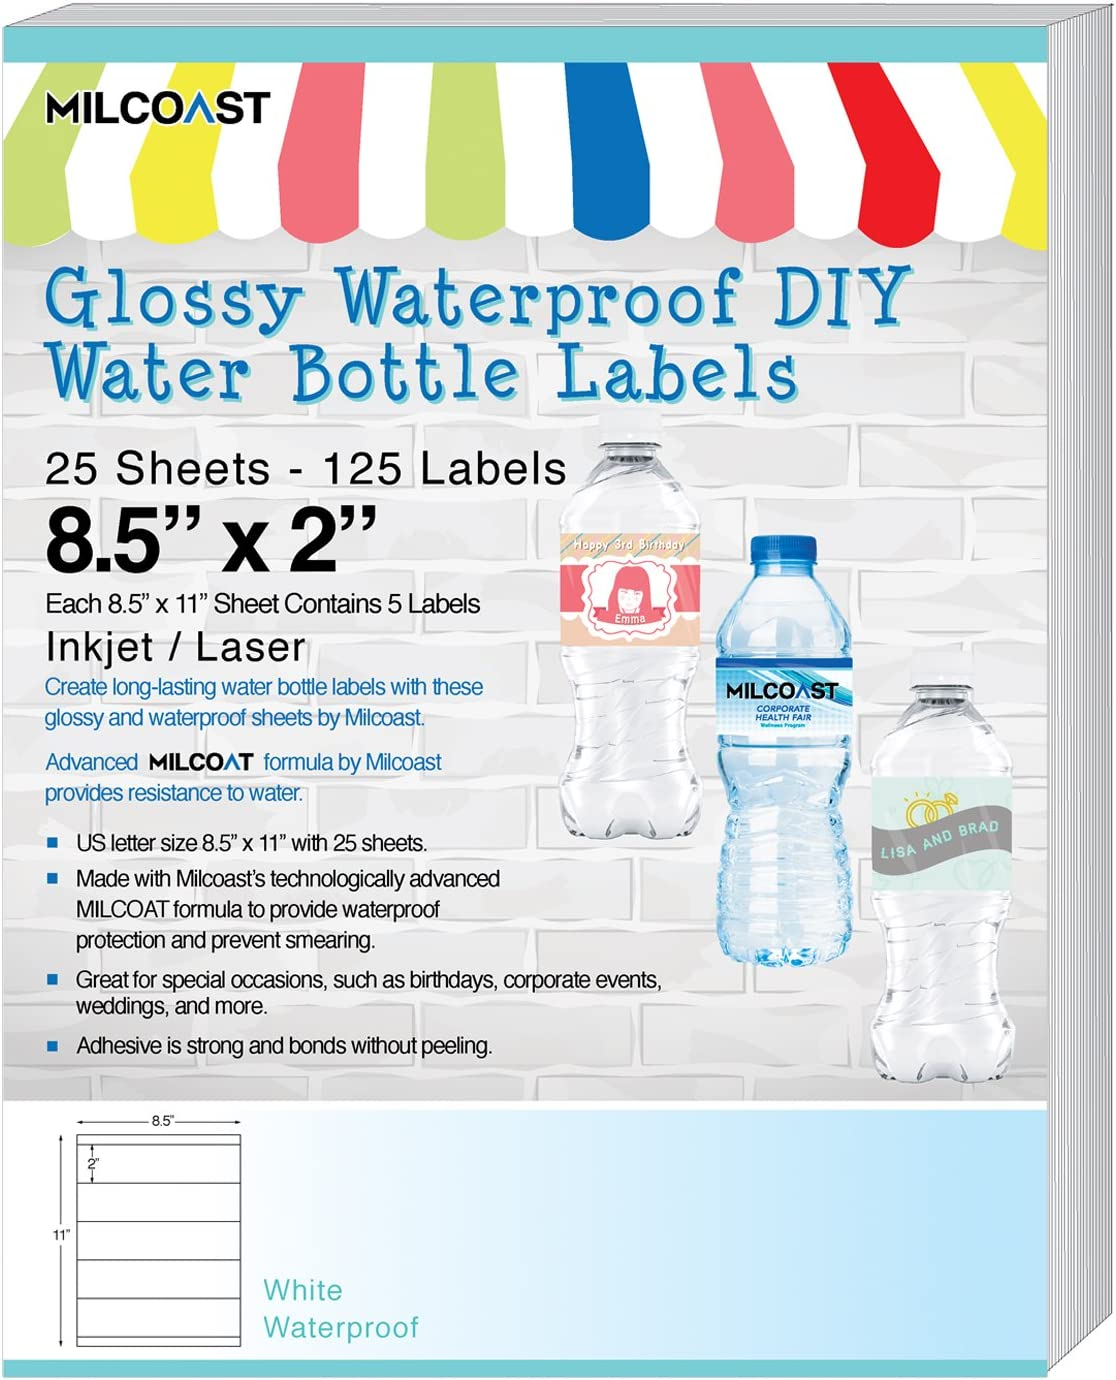 Amazon Com Milcoast Glossy Waterproof Diy Water Bottle Labels 8 5